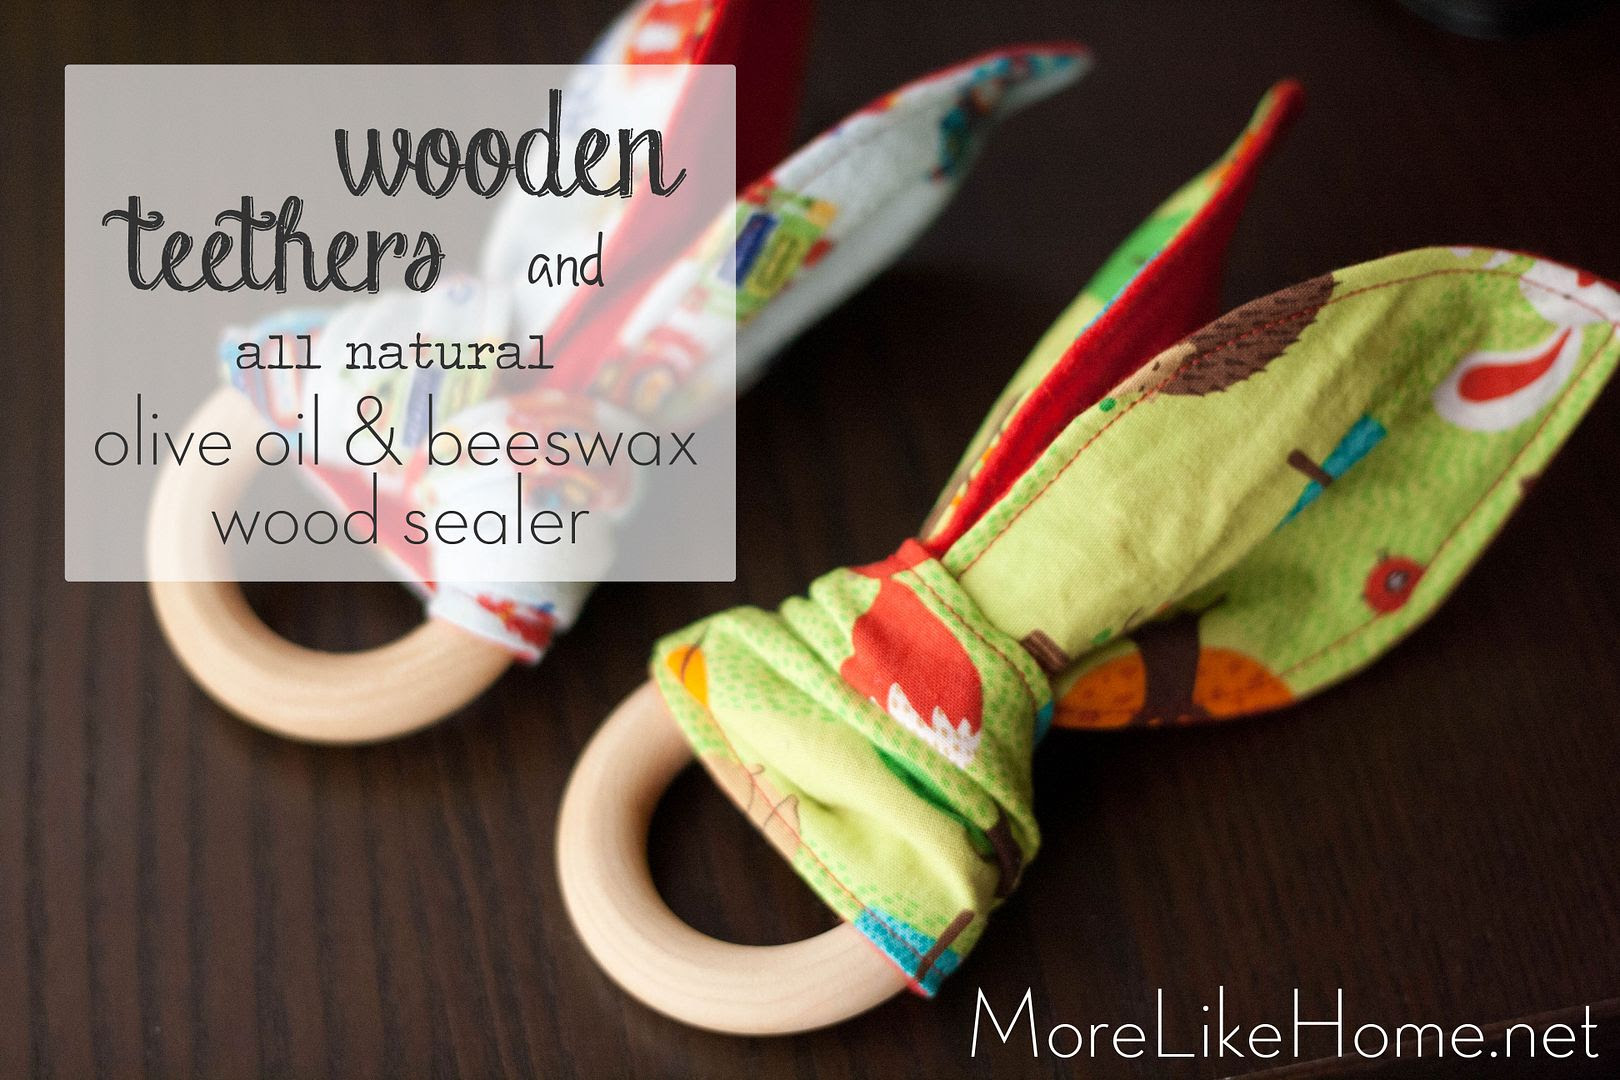 http://www.morelikehome.net/2014/06/taggie-teething-toys-natural-olive-oil.html